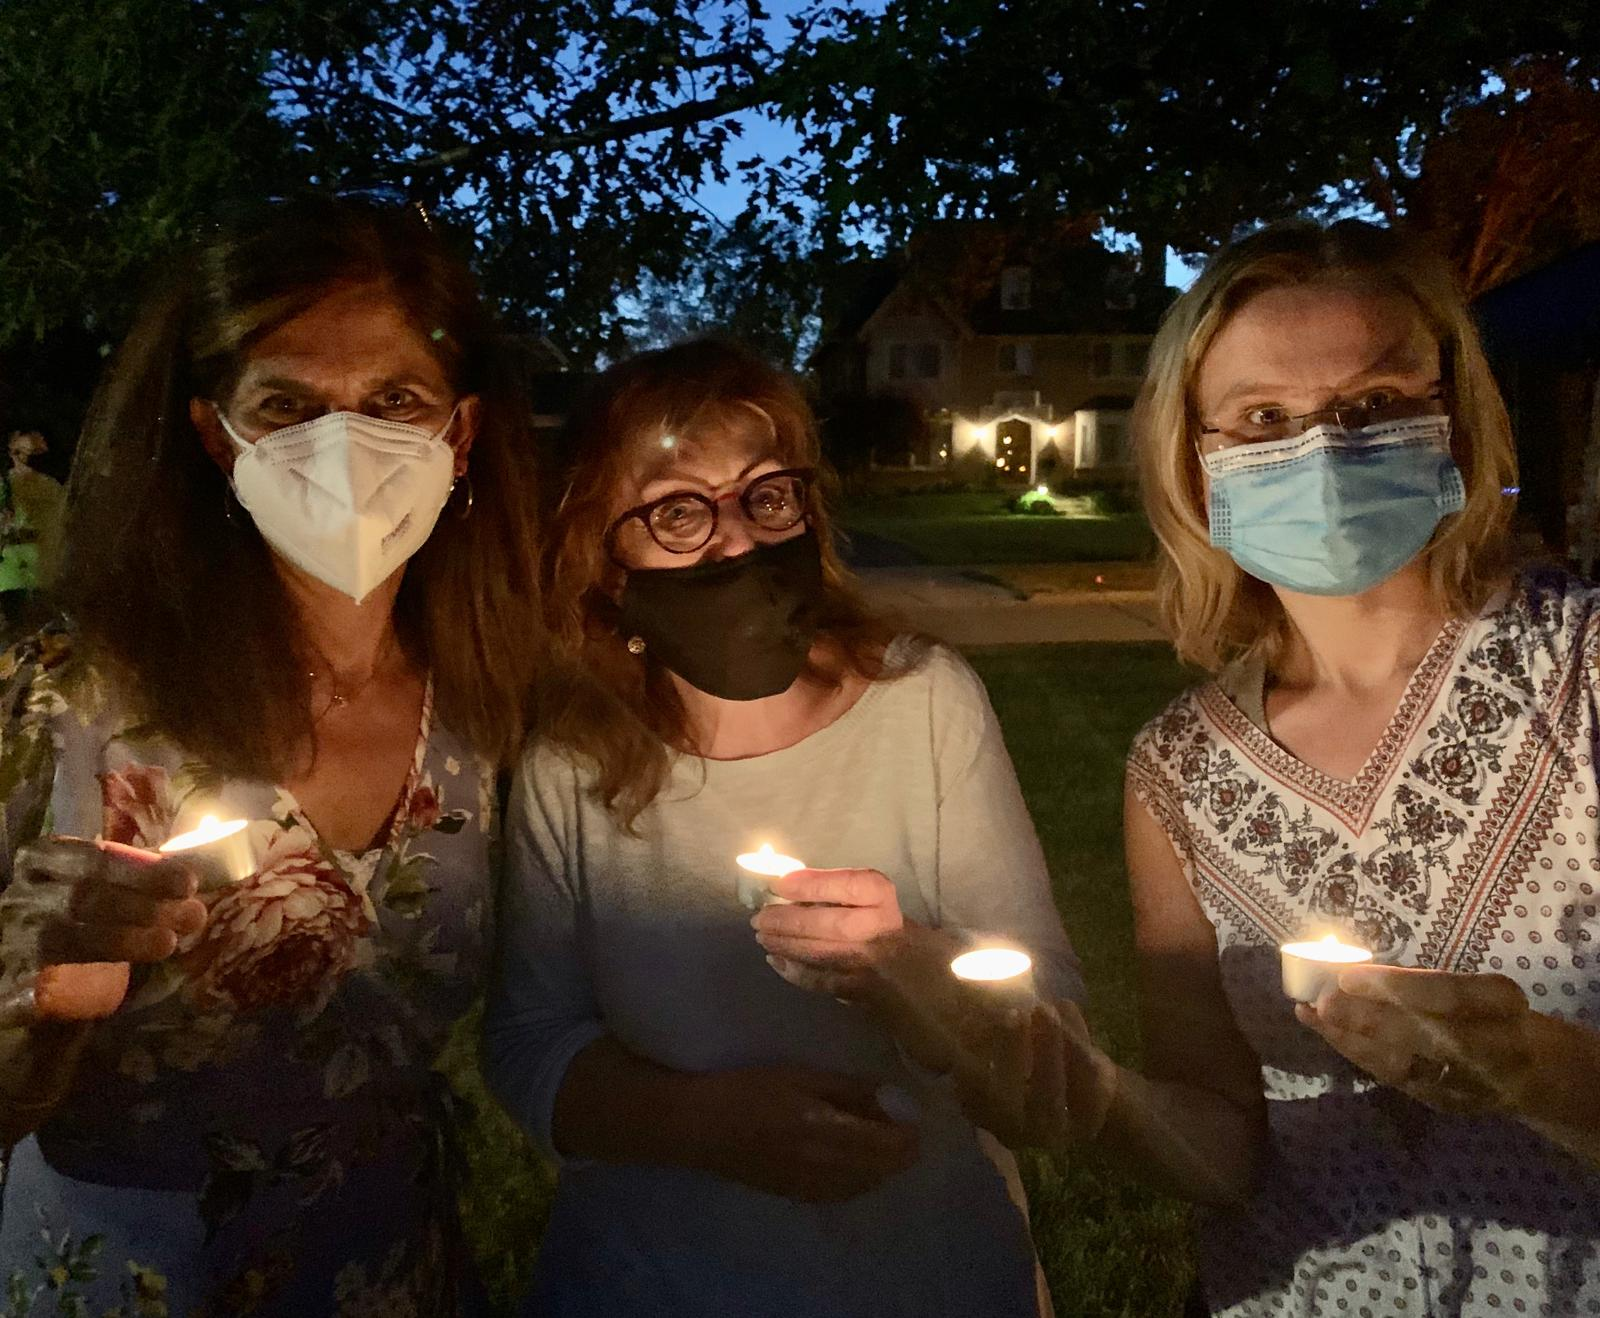 Three women hold candles at dusk. They wear face masks.